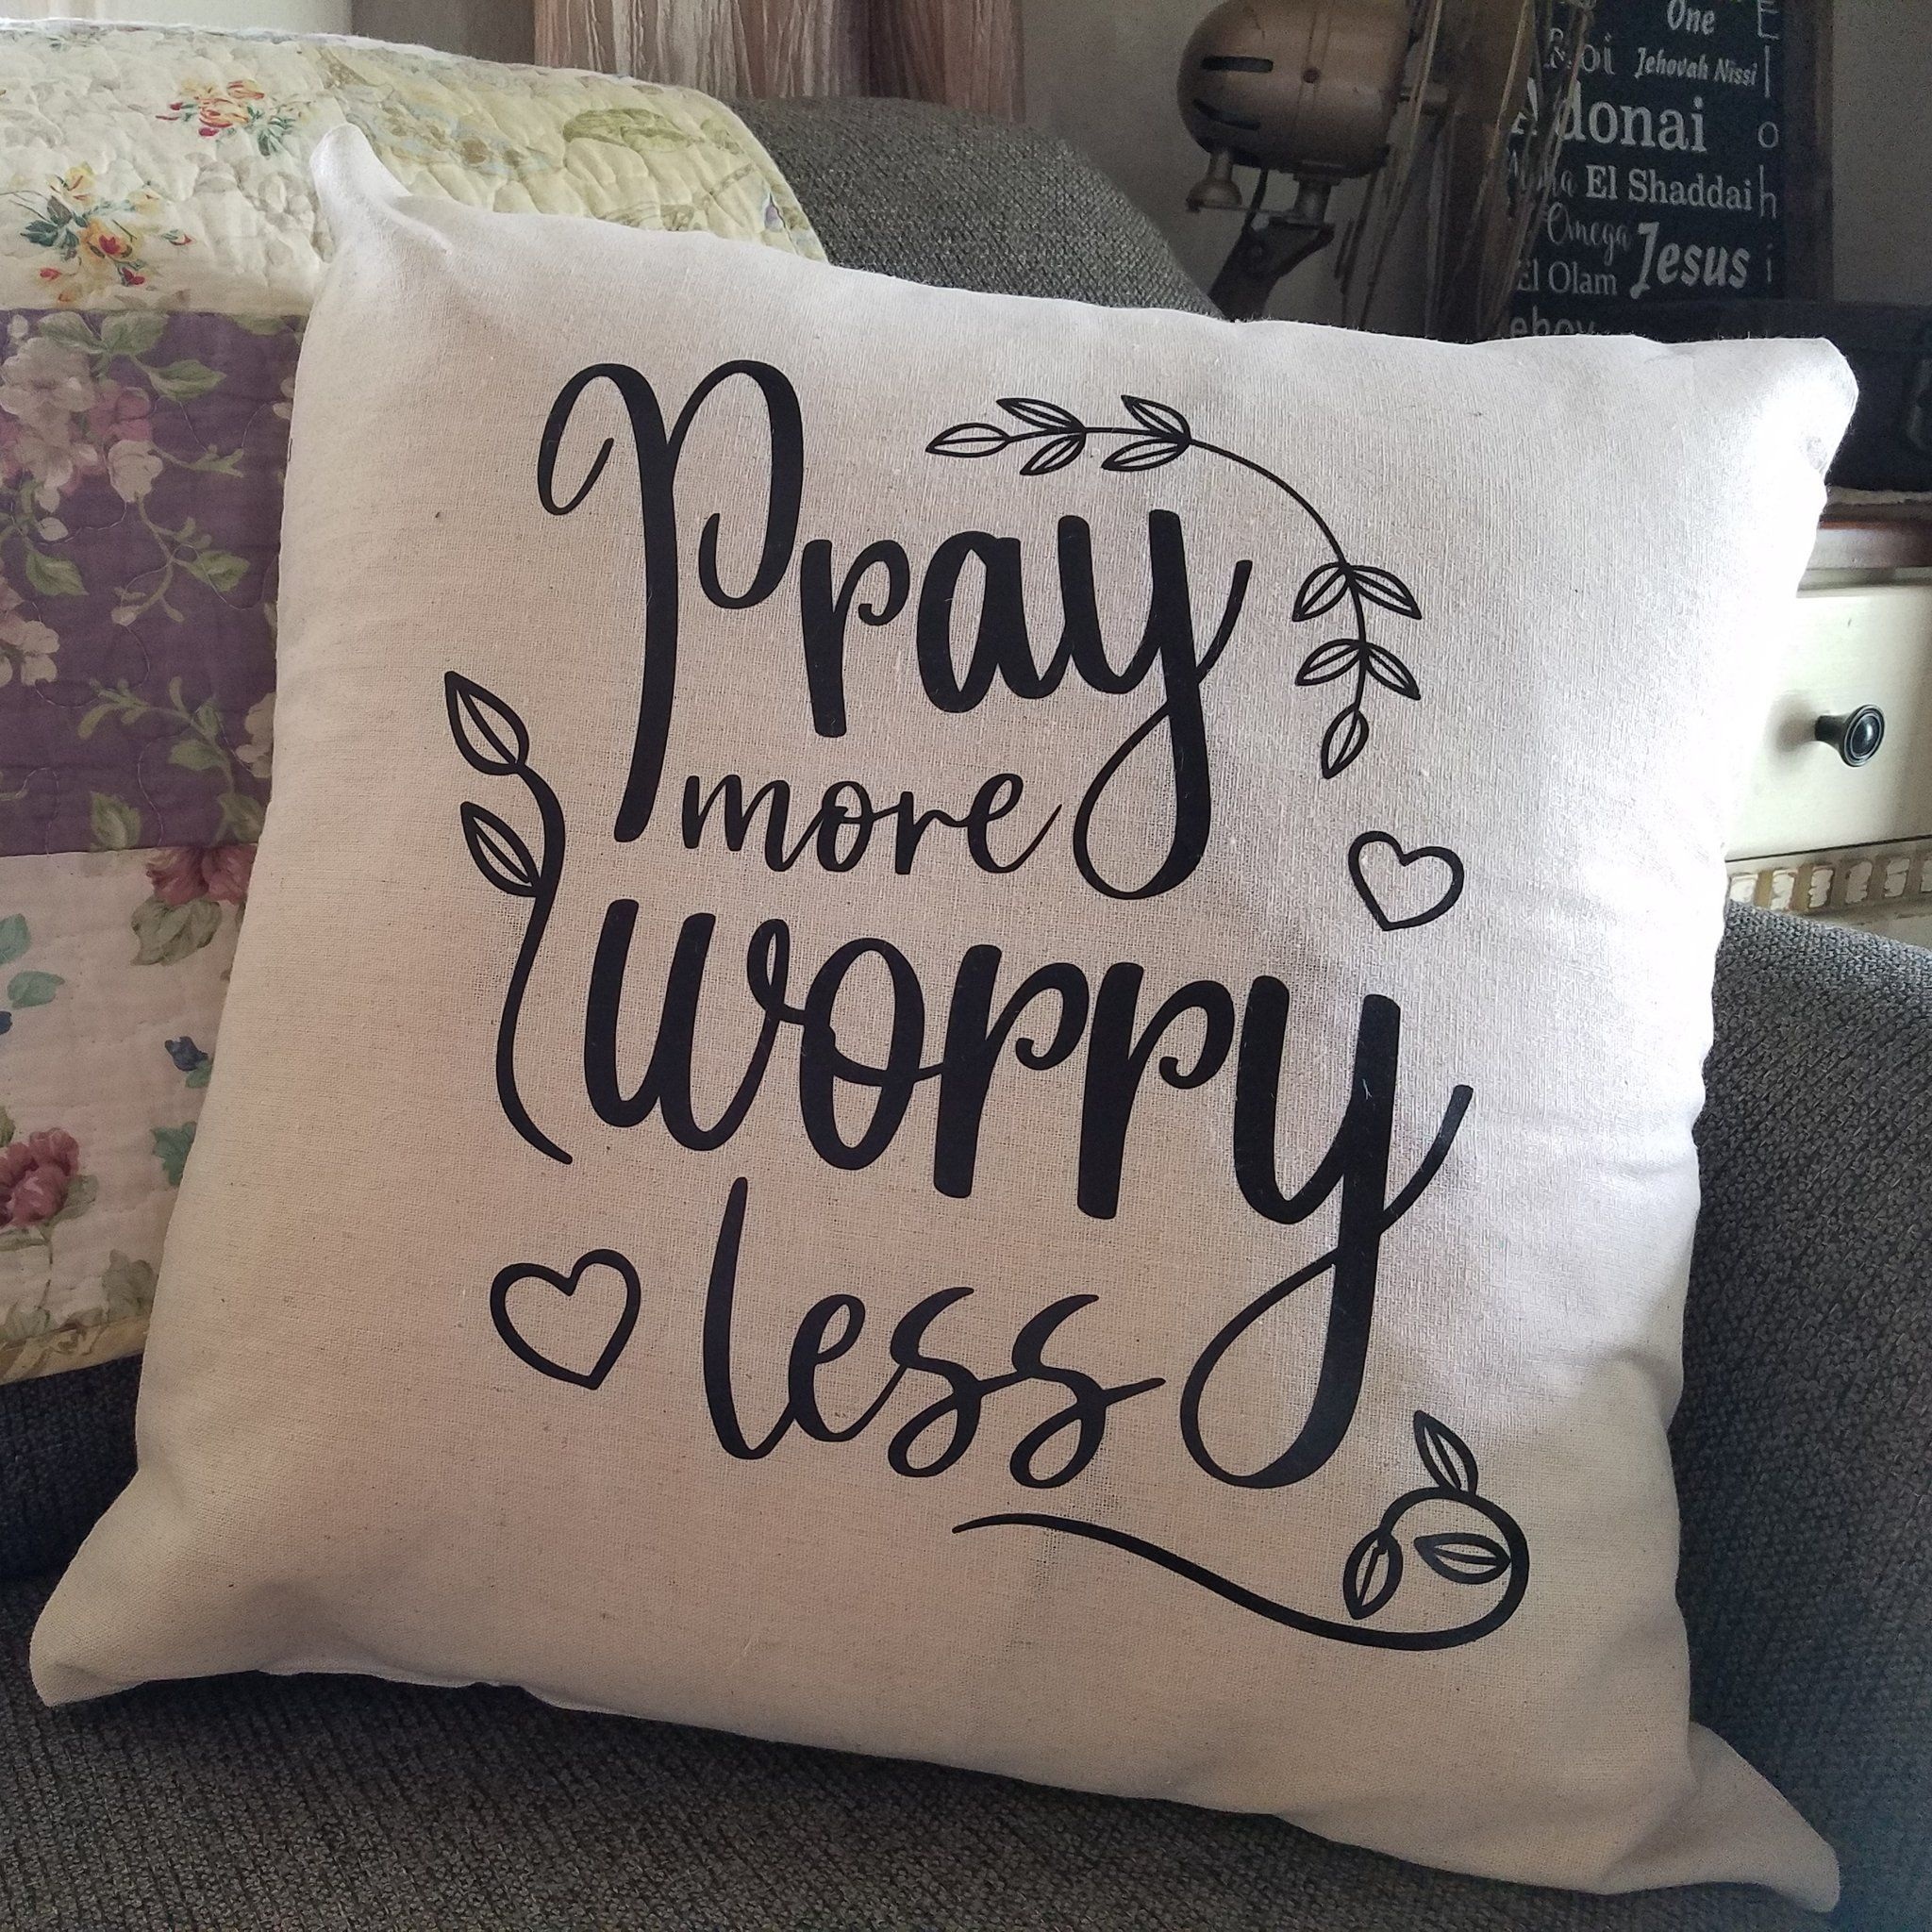 Pray More Worry Less Cotton Throw Pillow Cover Makes Updating Your Decor Simple And Elegant By Just Changing O Throw Pillow Covers 18x18 Throw Pillows Pillows